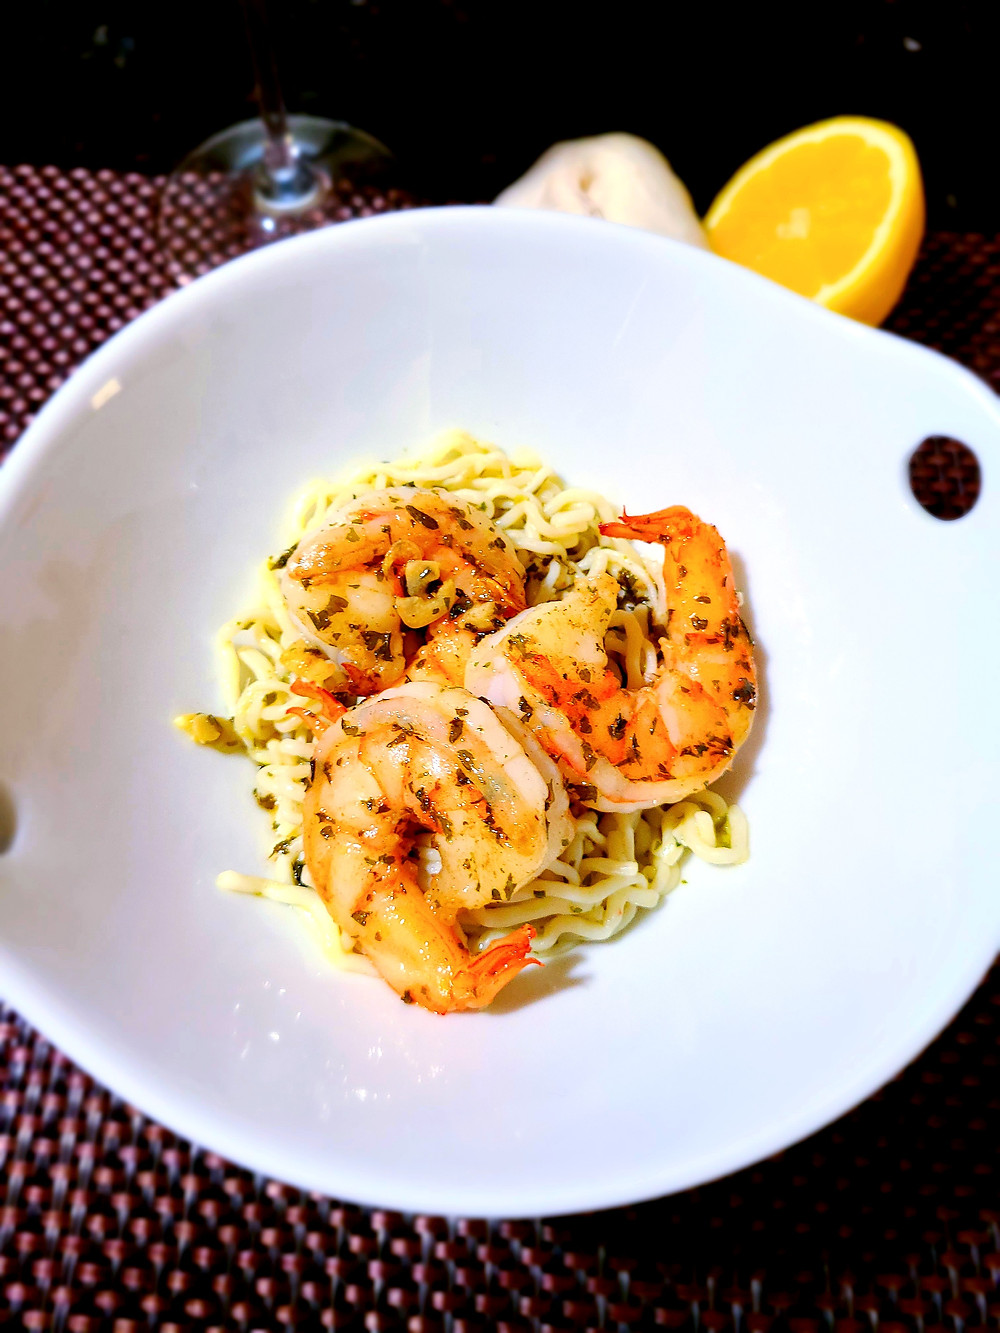 Quick Garlic-Buttery Shrimp Scampi (Gluten-free, dairy-free, soy-free)